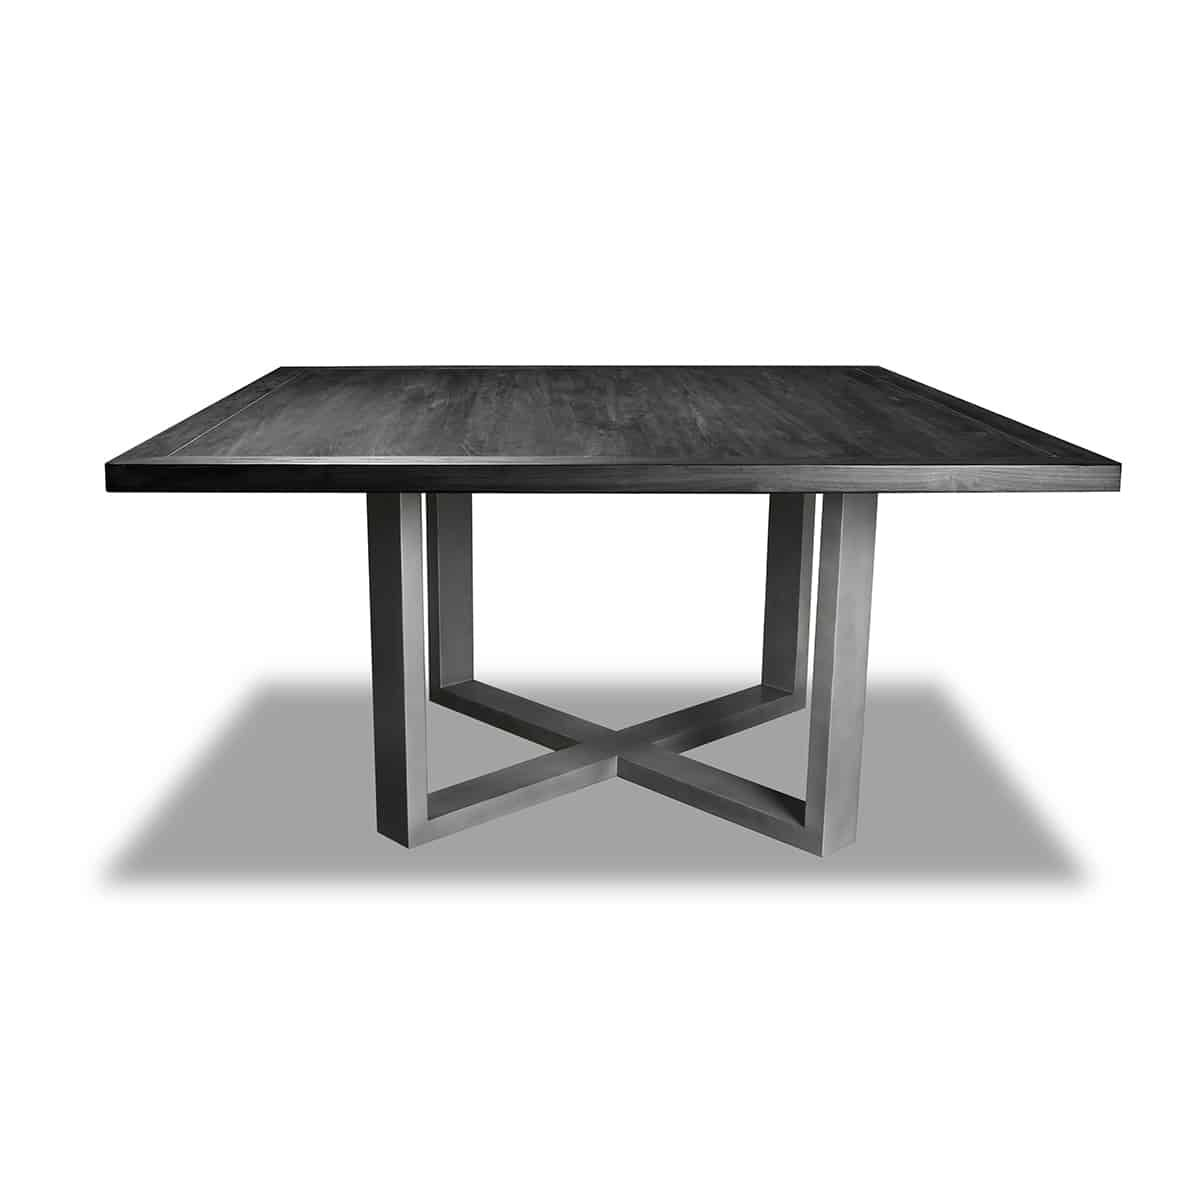 Crace Square Dining Table Square Dining Tables Dining Table Dining